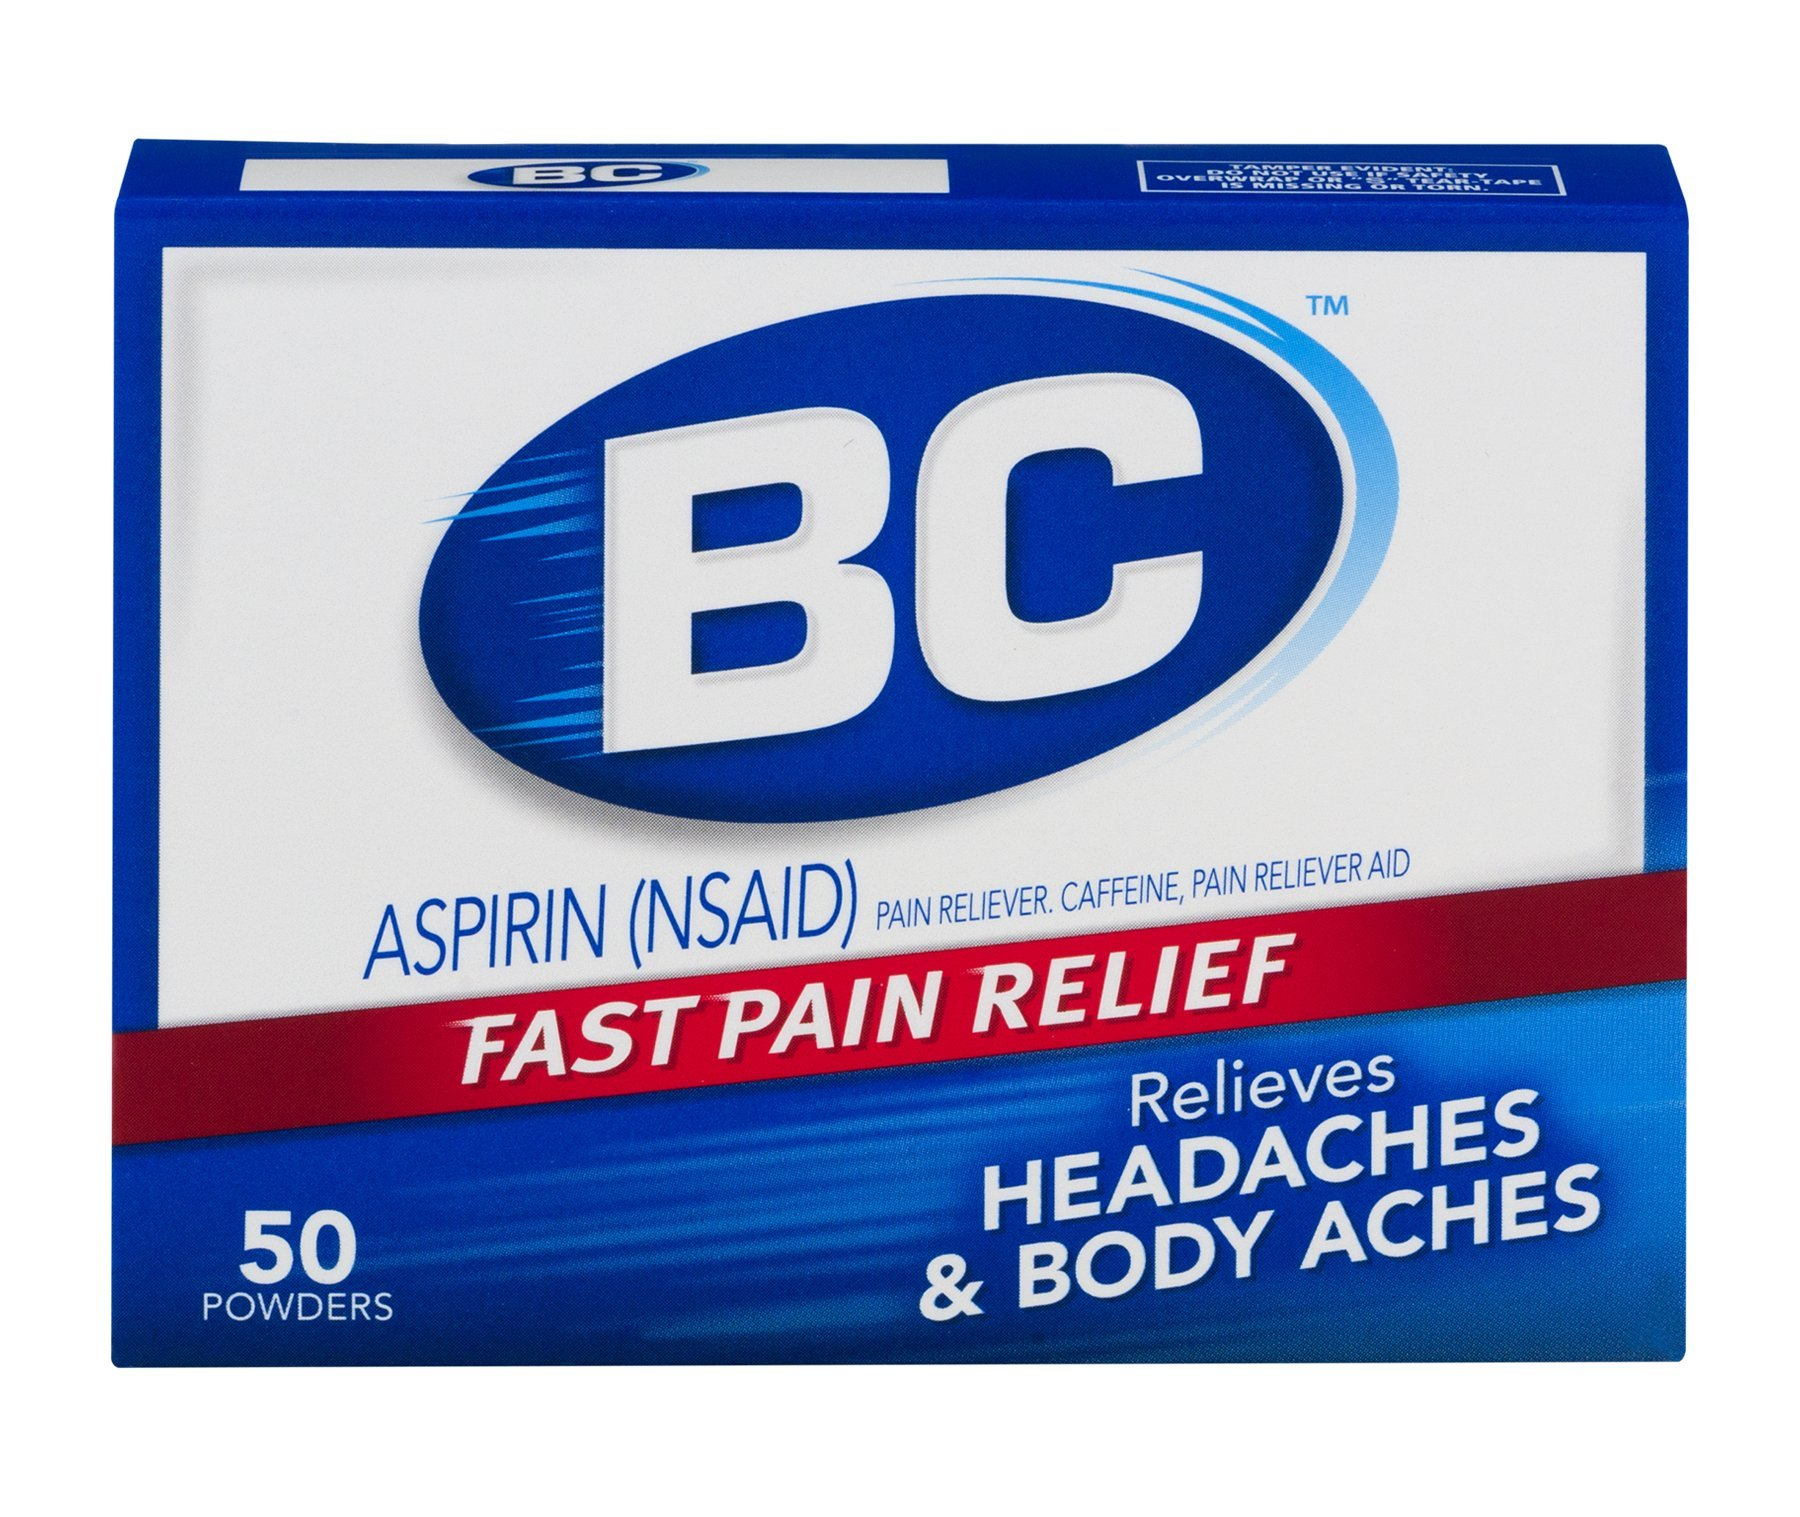 BC Aspirin Fast Pain Relief Powder, Quickly Relieves Pain Due to Headaches, Body Aches and Fever, Contains Caffeine, 50 Powders